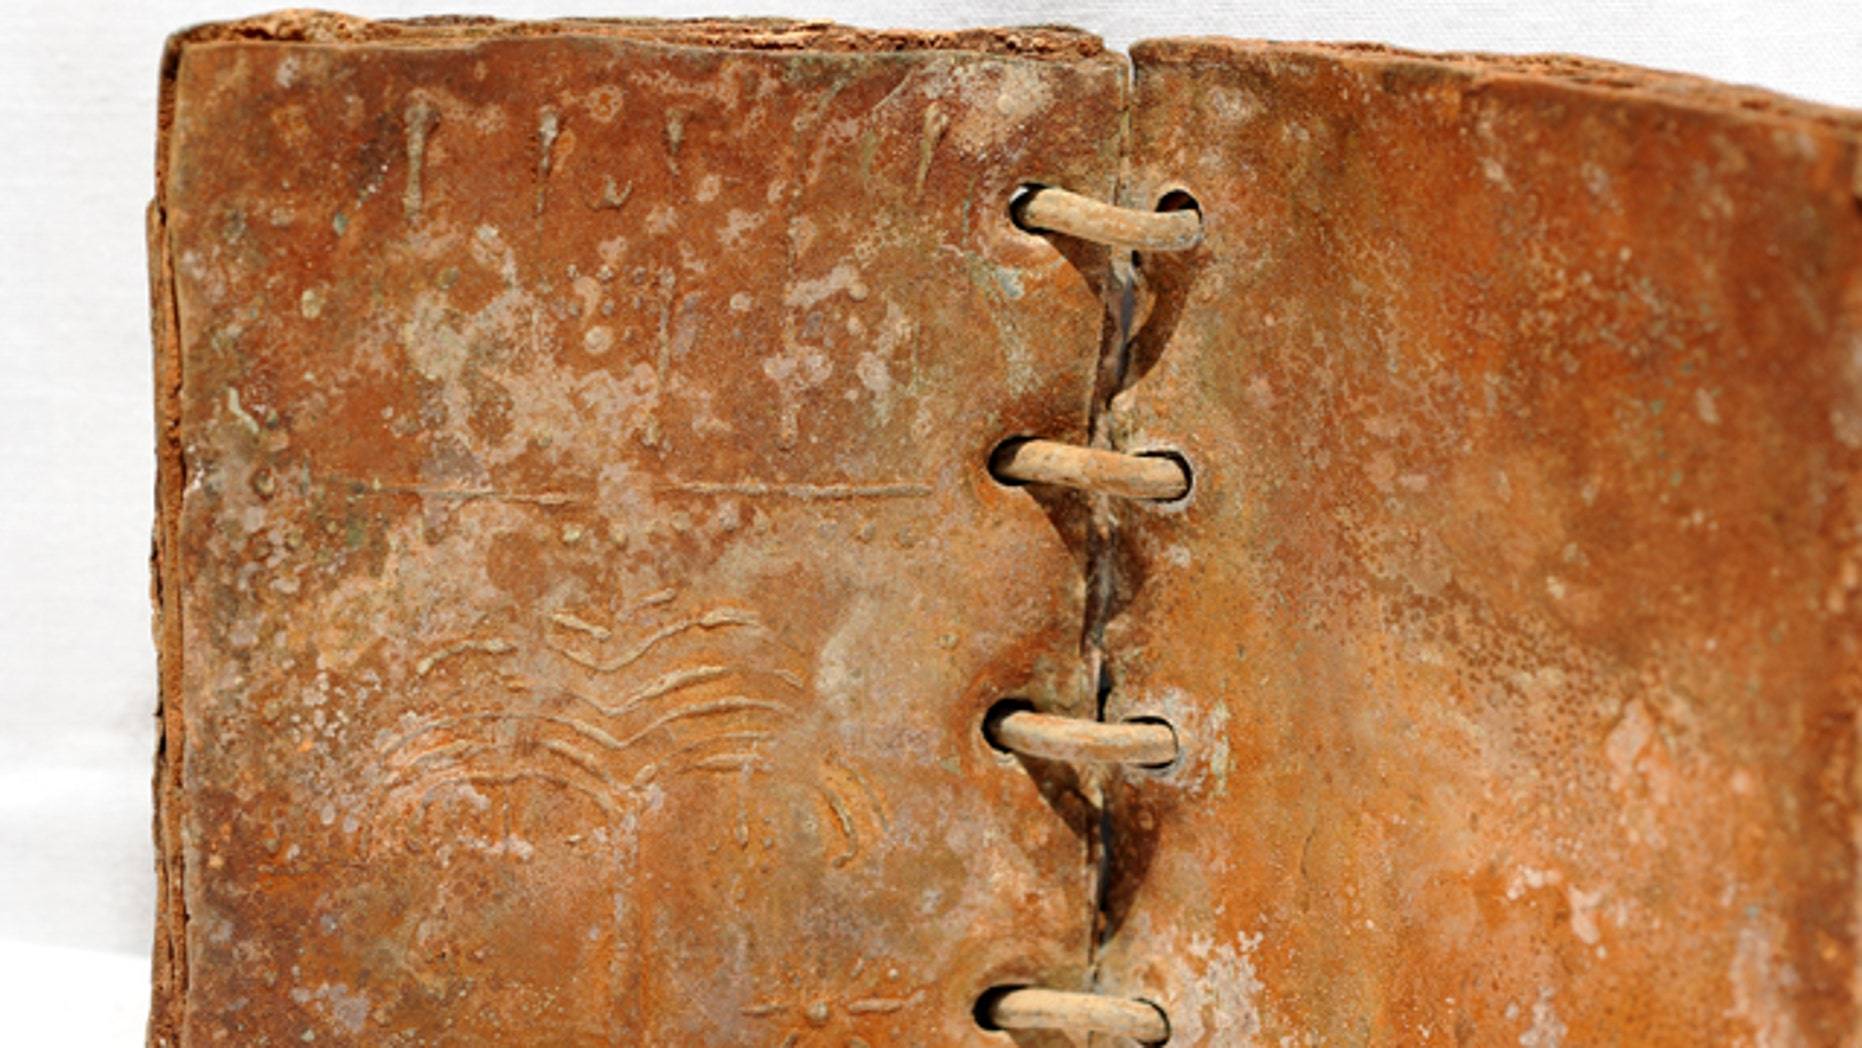 This artifact was one of 70 ring-bound books, or codices, made of lead and copper that was part of a secret hoard of ancient sealed books found in Jordan.